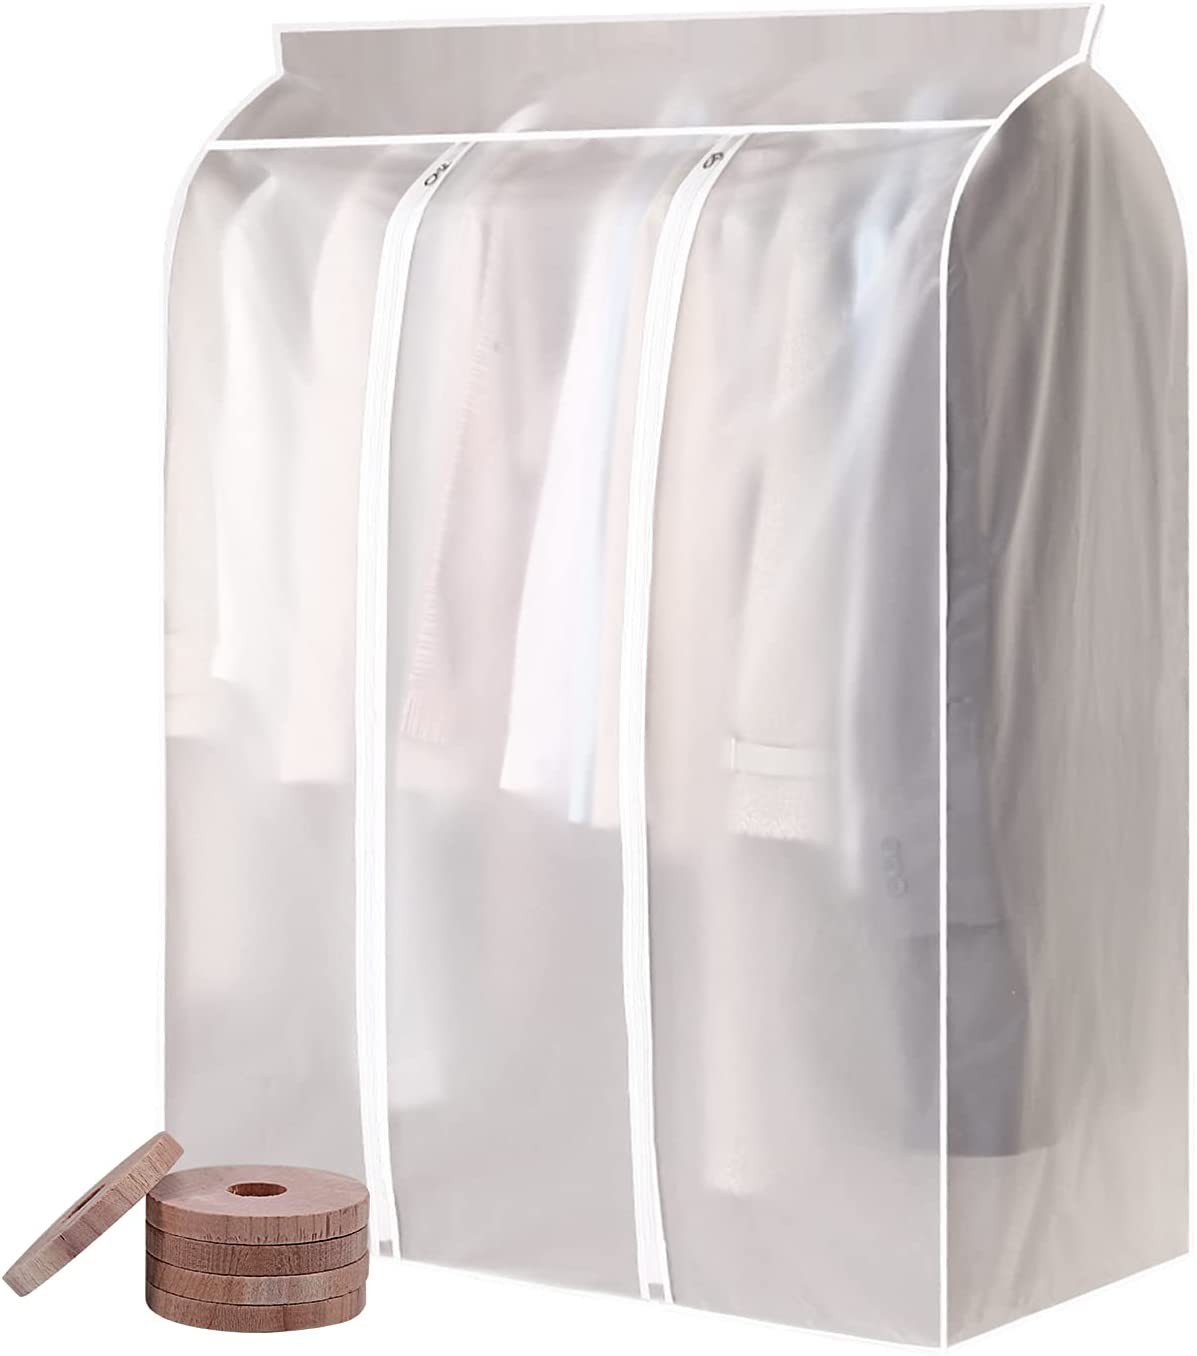 50'' Extra Large Translucent Frosted Garment Rack Cove, Garment Bags for Closet Storage Clothes Dust Cover, Seal Closets to Protect Clothing, Hanging Shirts, Coats, Dresses, Suits, 5 Cedar Wood Chips